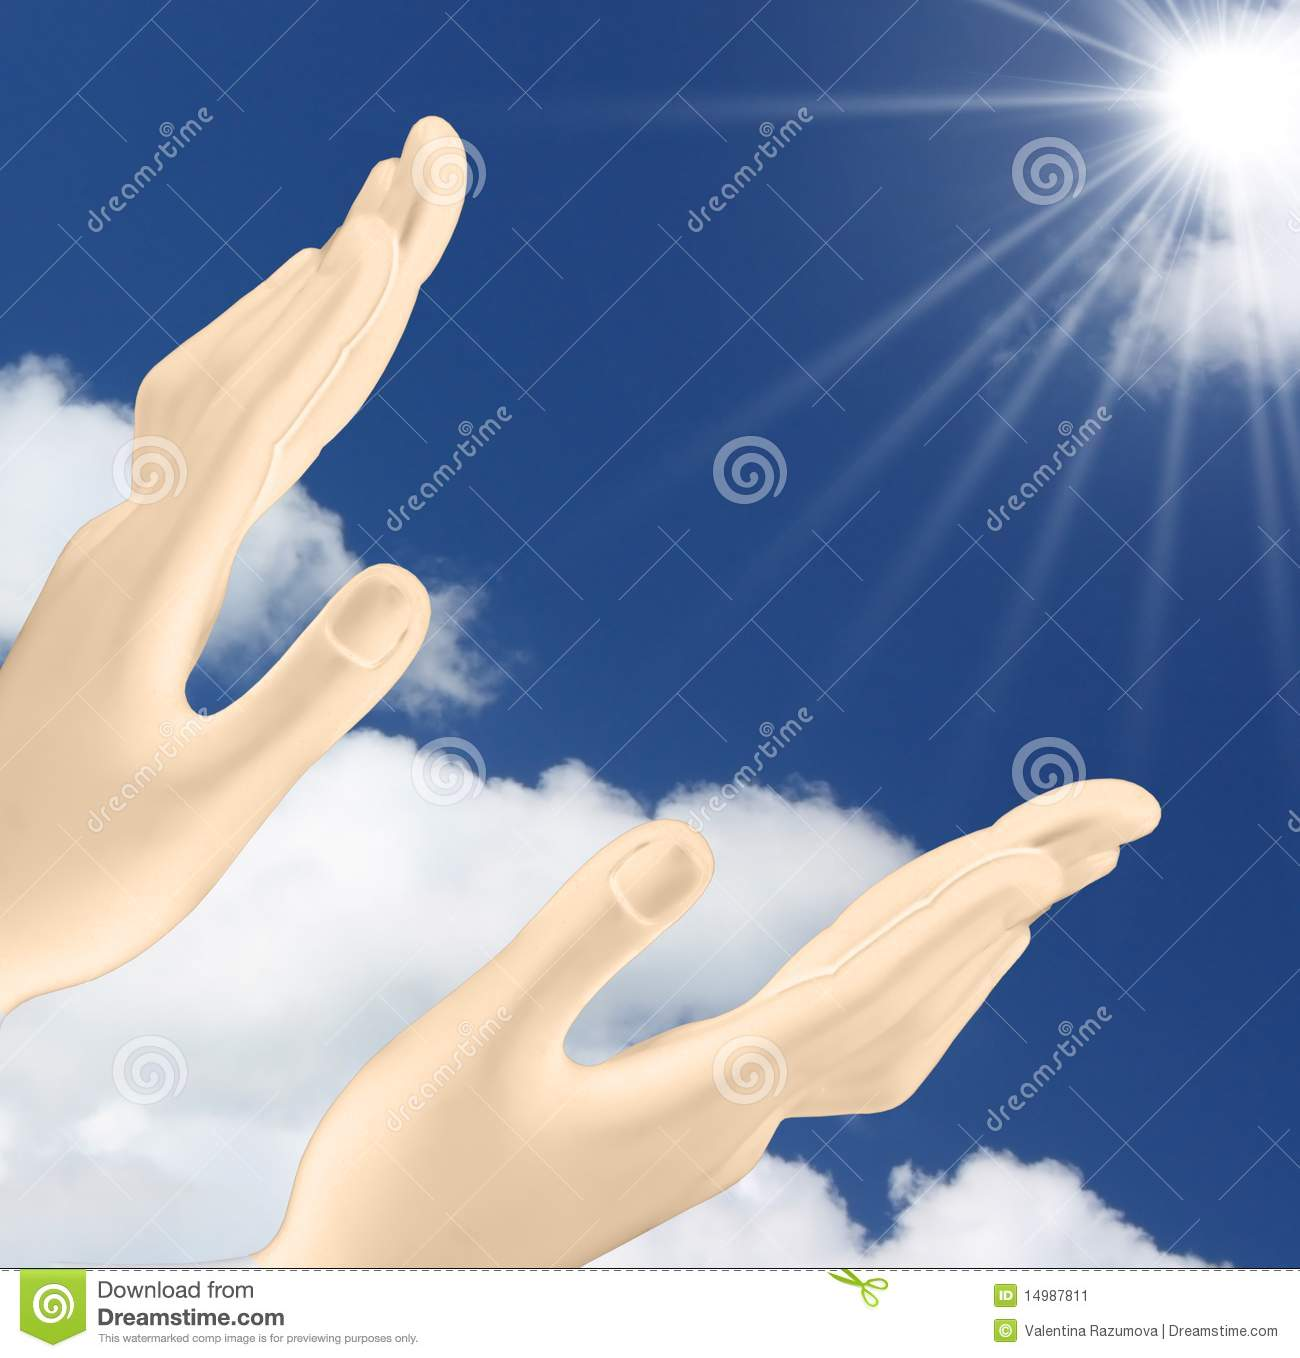 Hands Reaching Out The Sun Stock Image   Image  14987811